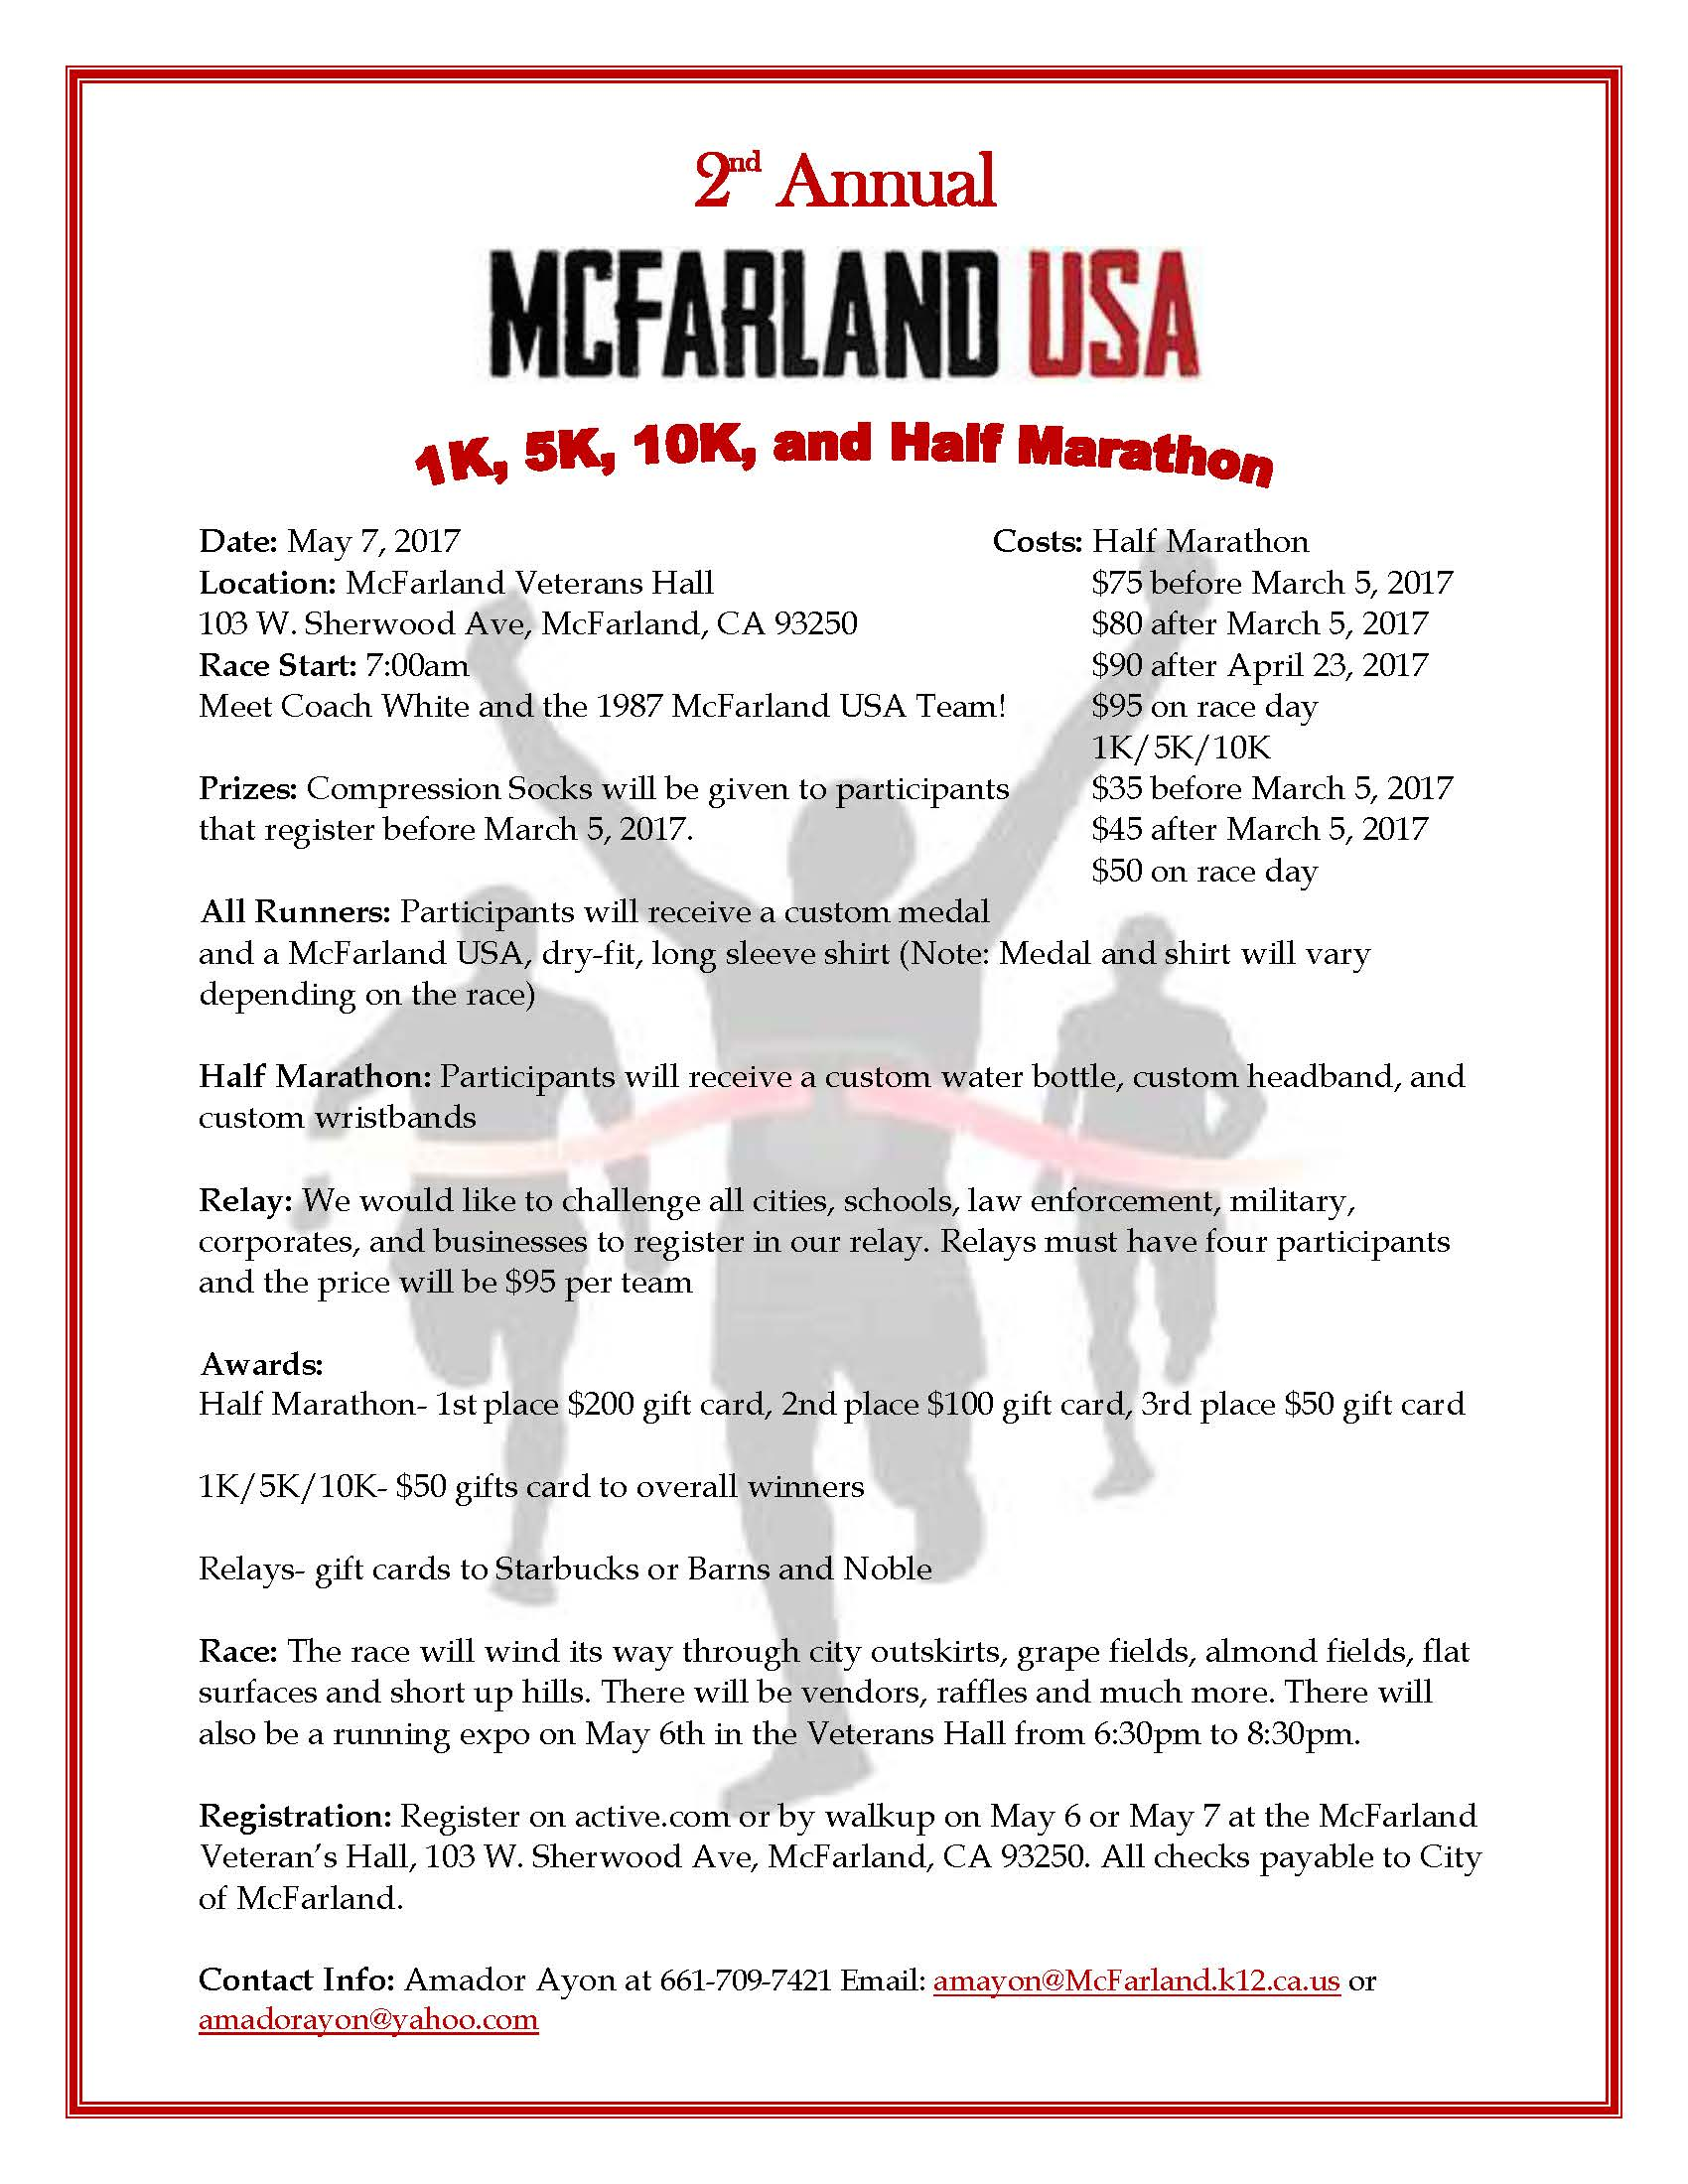 2nd Annual McFarland USA Flyer